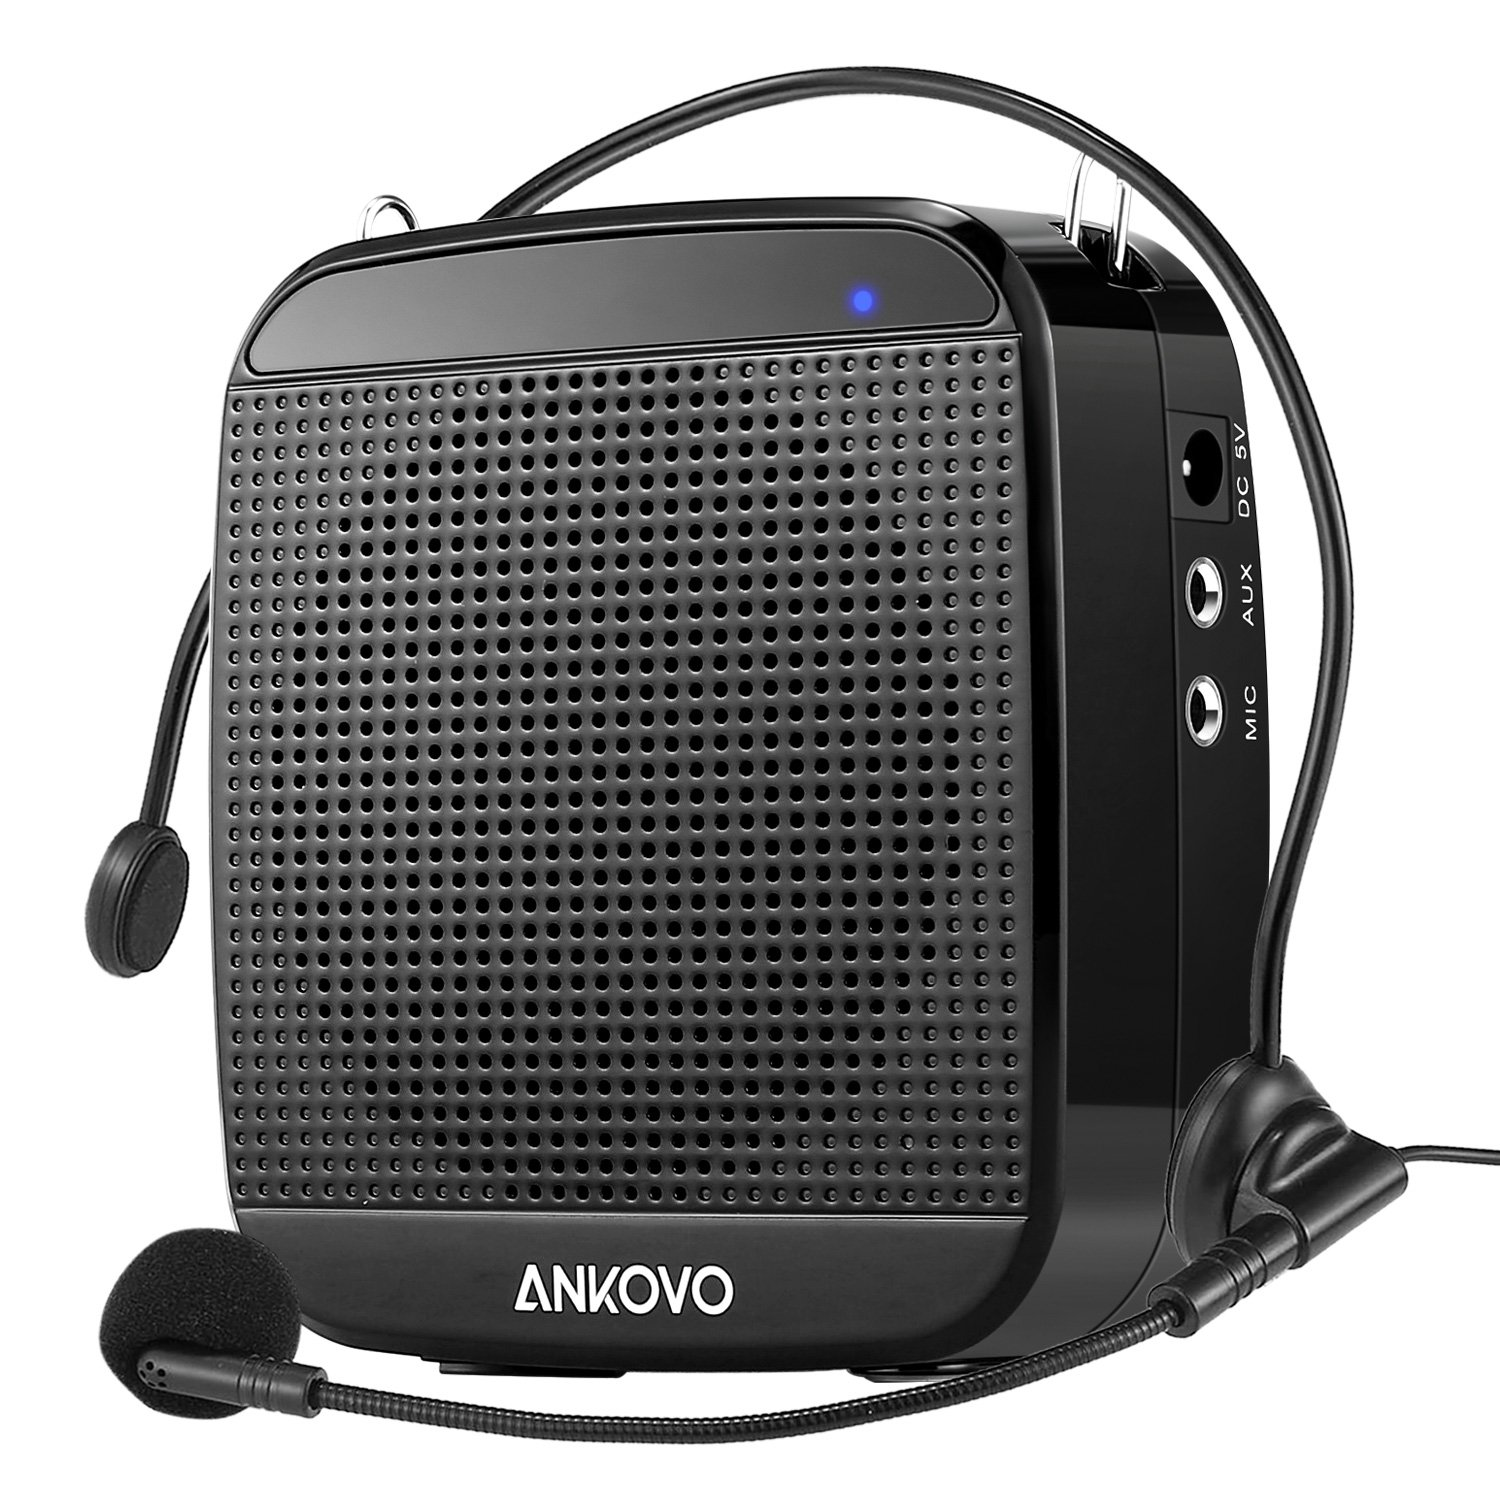 ANKOVO Portable Rechargeable Voice Amplifier With Wired Microphone Headset and Waist Support, Supports MP3 Format Audio for Teachers, Singing, Coaches, Training, Presentation, Tour Guide